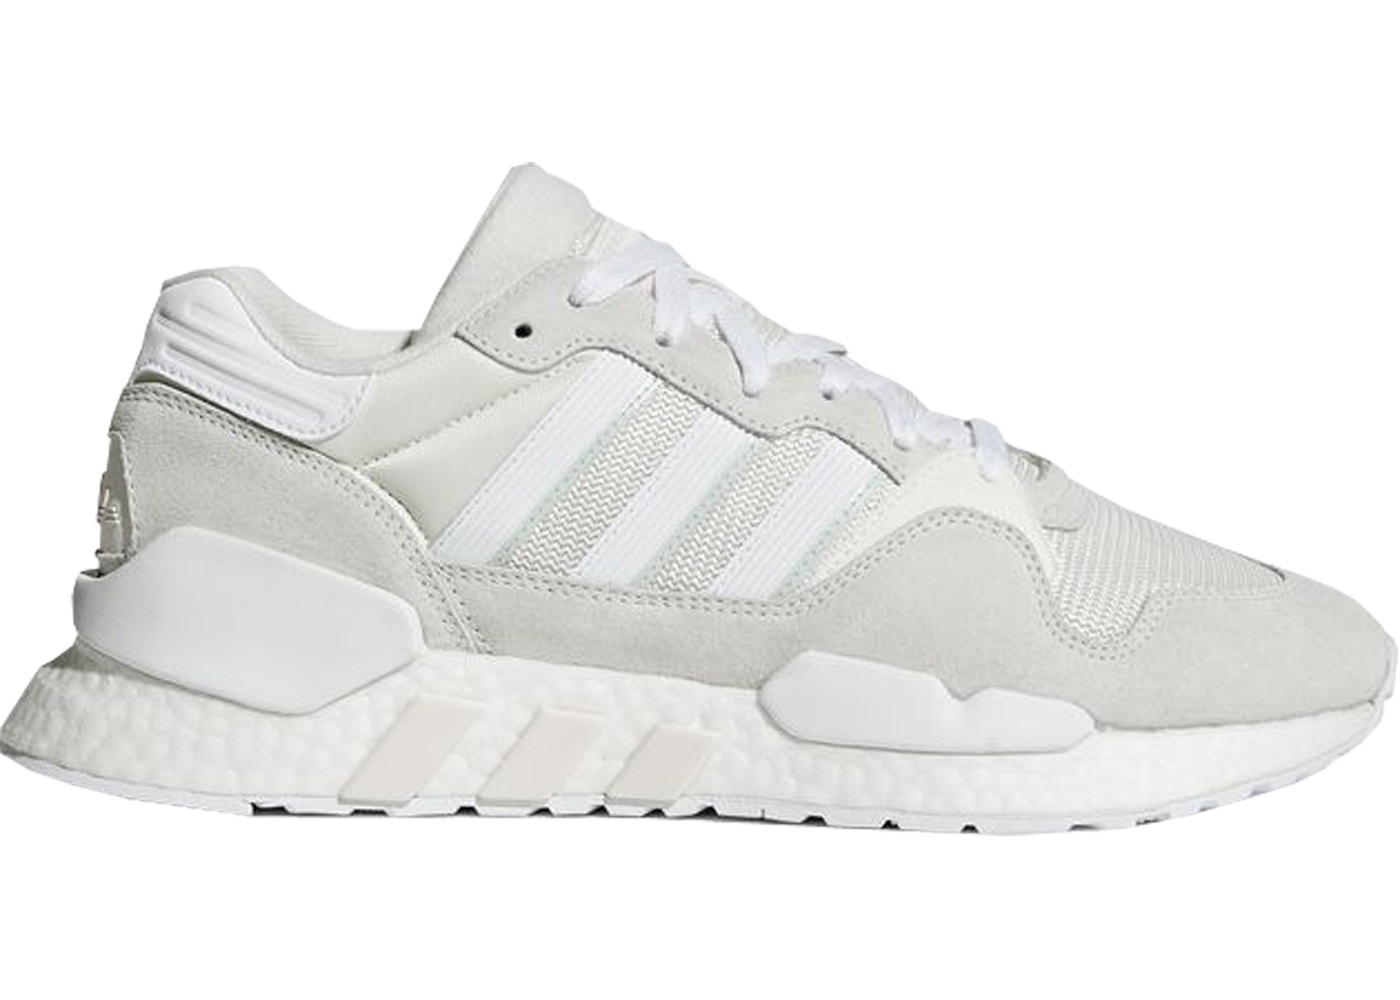 online retailer d12c7 c7269 adidas ZX 930 x EQT Never Made Pack Triple White